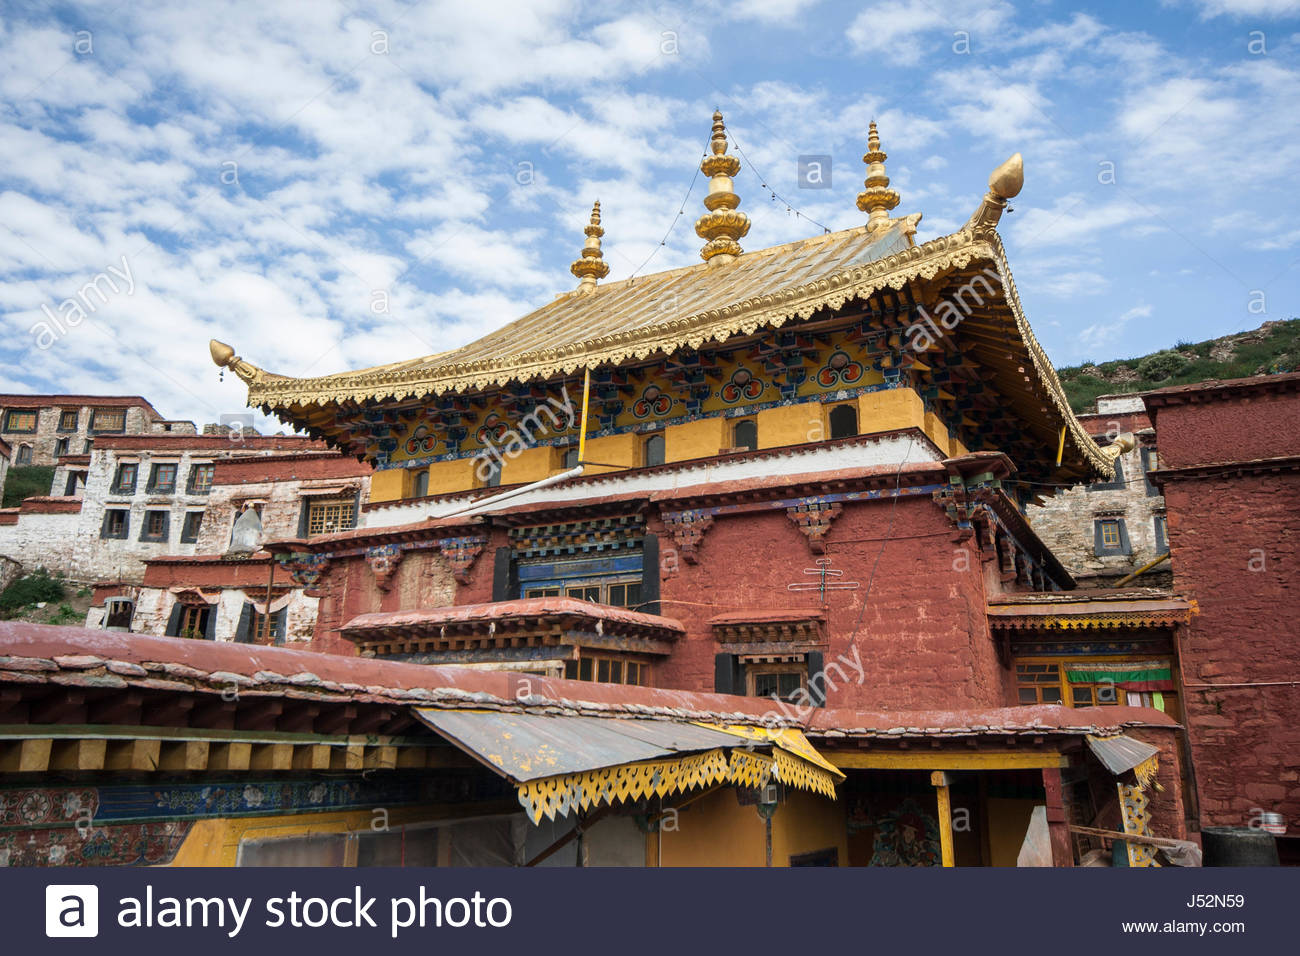 Military Museum of the Chinese People's Revolutions Beijing, Golden roof and pinnacles of Ganden Monastery, Lhasa, Tibet, shot ...